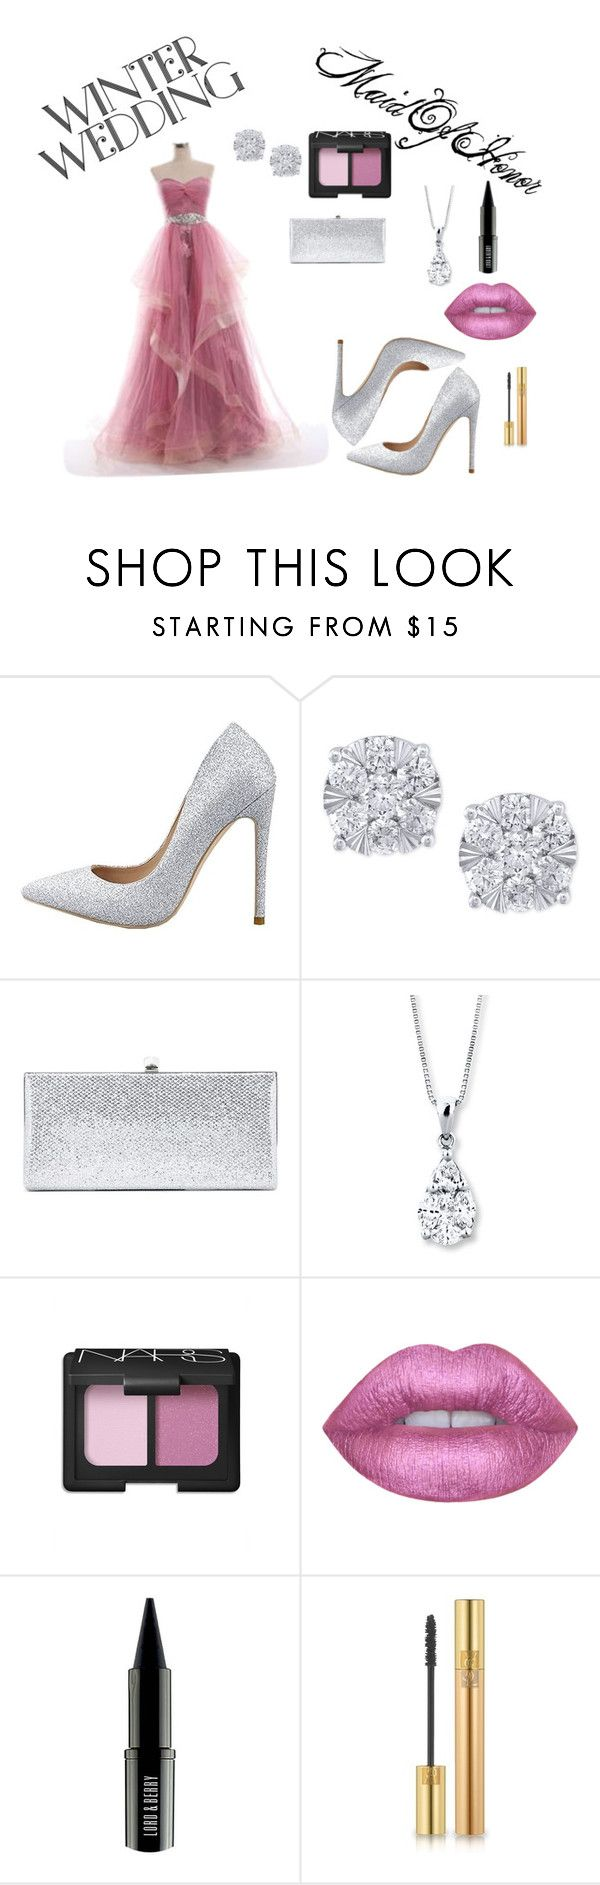 """""""Maid Of Honor Winter Wedding"""" by laurynmillard on Polyvore featuring Effy Jewelry, Jimmy Choo, NARS Cosmetics, Lime Crime, Lord & Berry and Yves Saint Laurent"""